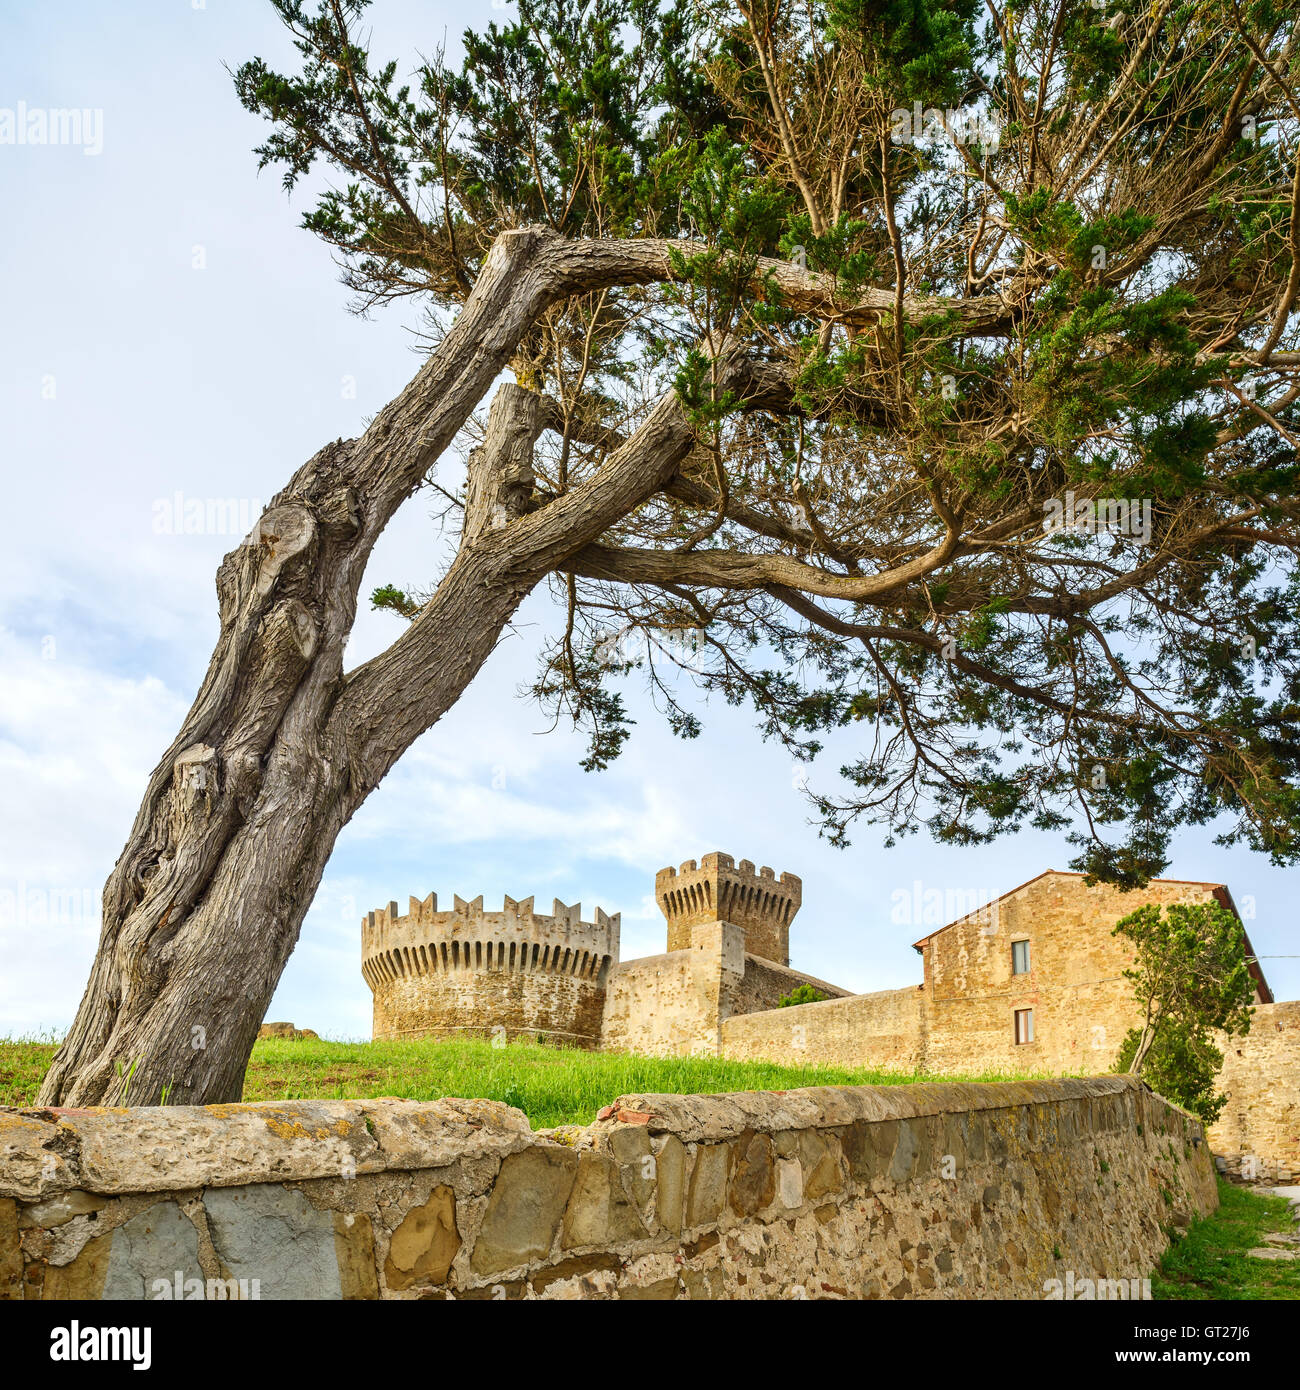 Pine tree in Populonia medieval village landmark, city walls and fort tower on background. Tuscany, Italy. - Stock Image